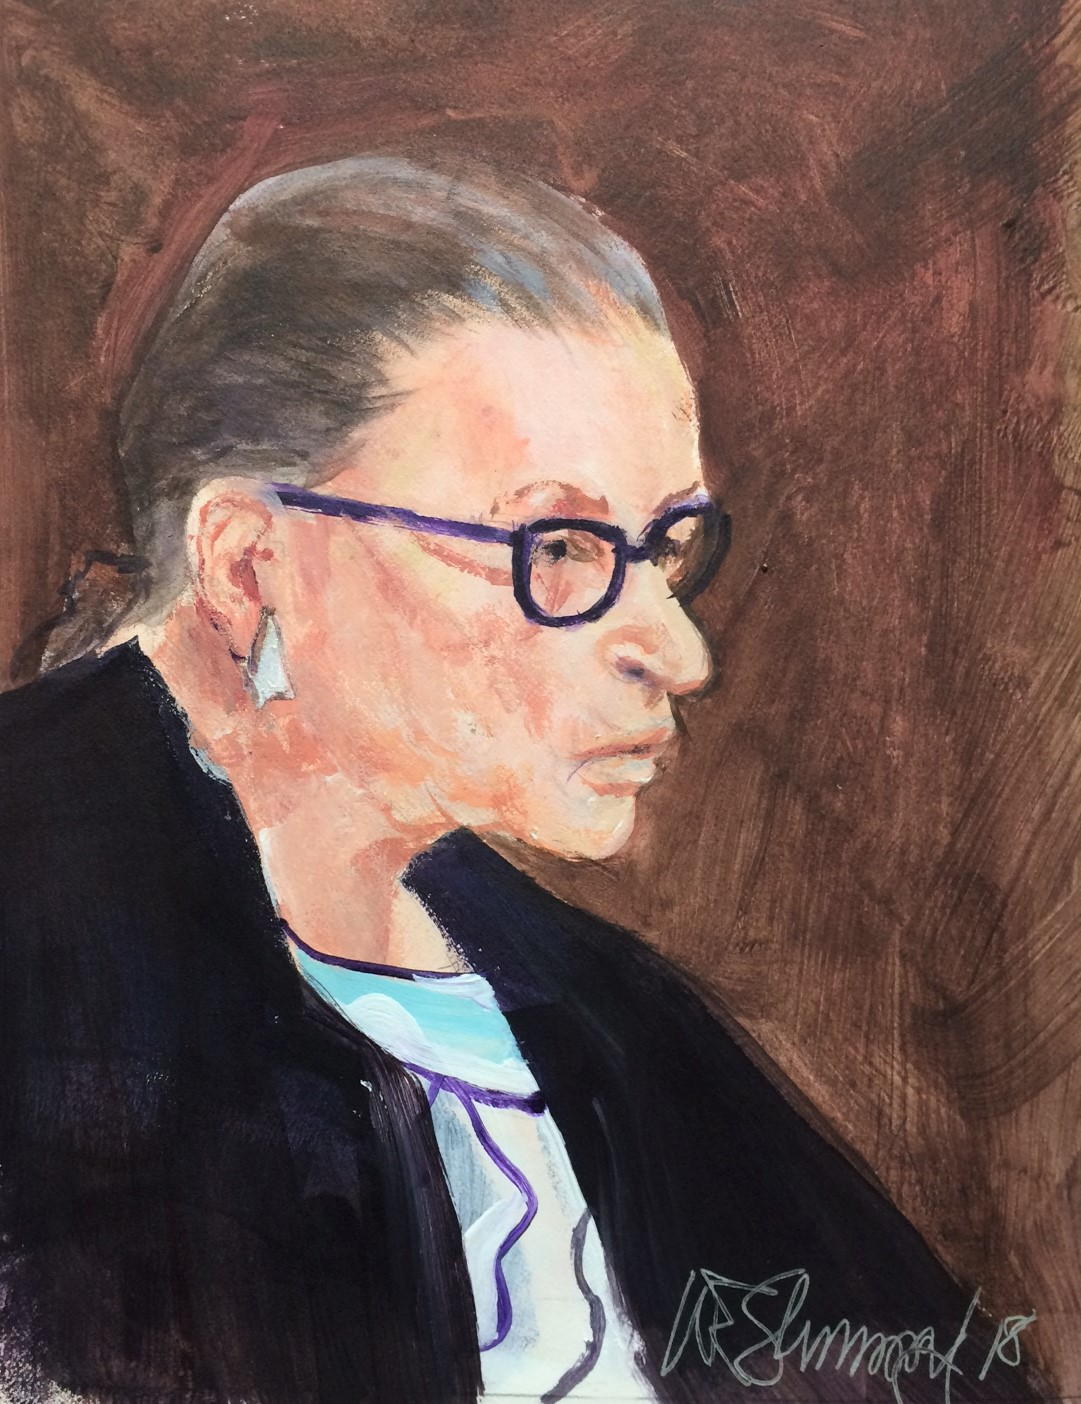 Ruth Bader Ginsburg by W.E.Shumway acrylic 7.5 X 9.5 inches 175.00.JPG